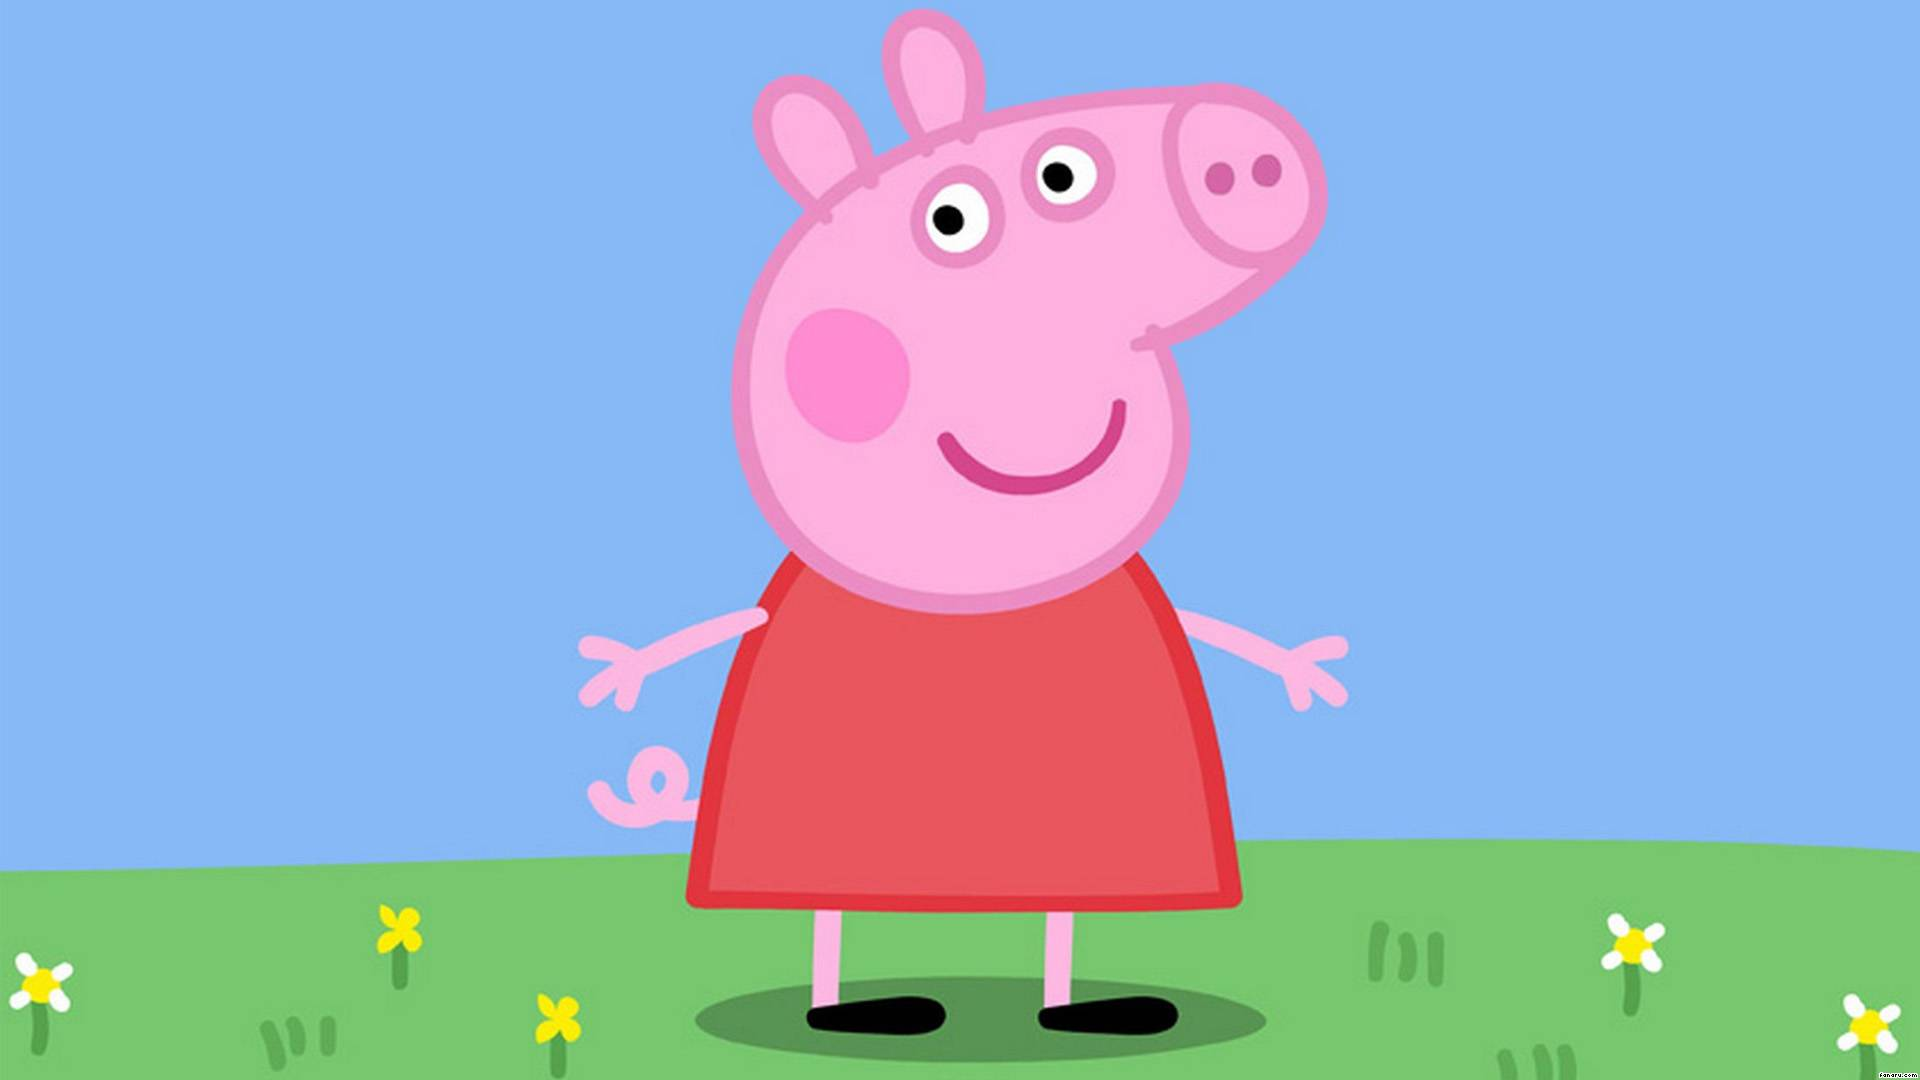 39+ Peppa Pig Wallpaper Desktop, HD Quality Peppa Pig Images ...